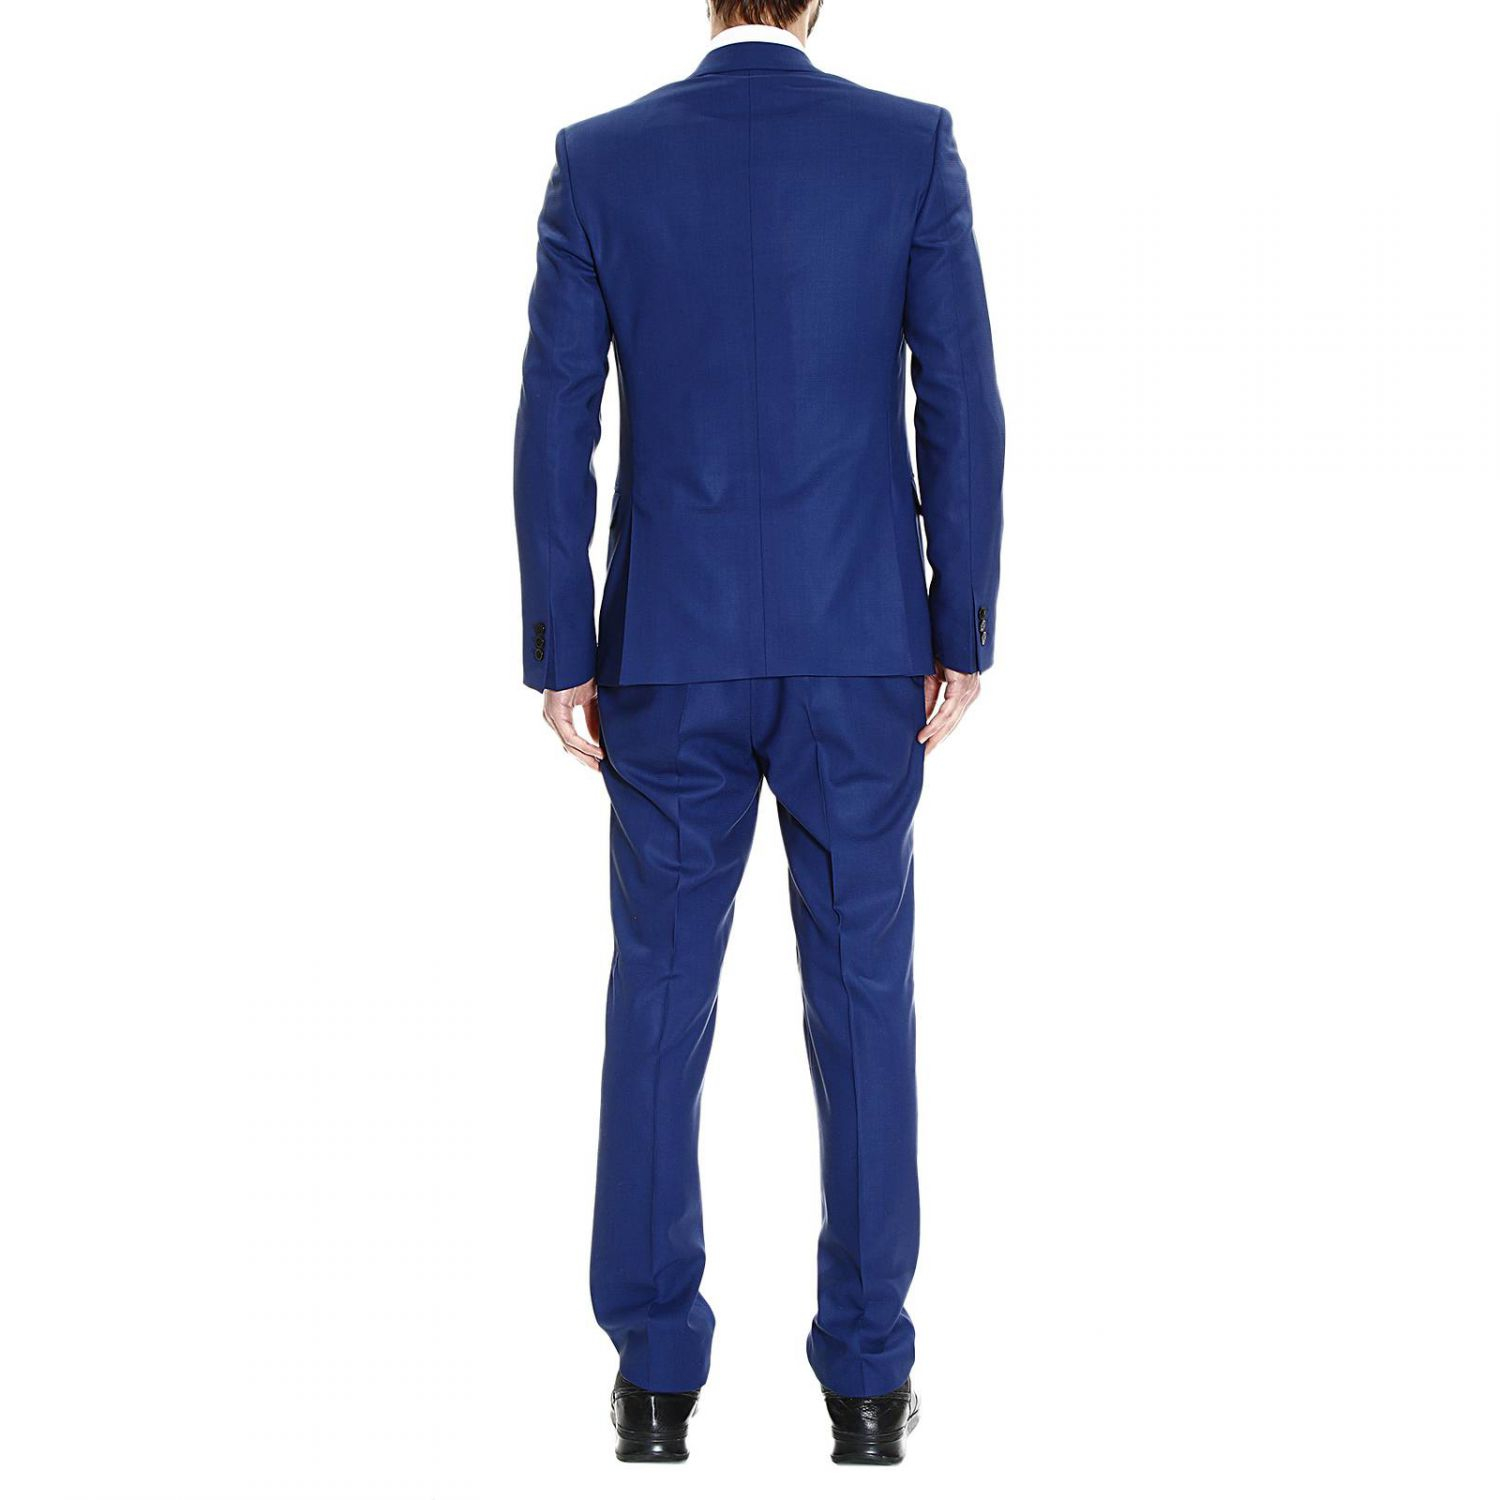 Versace Suit Dress Trend 2 Buttons Wool Pinstripe In Blue